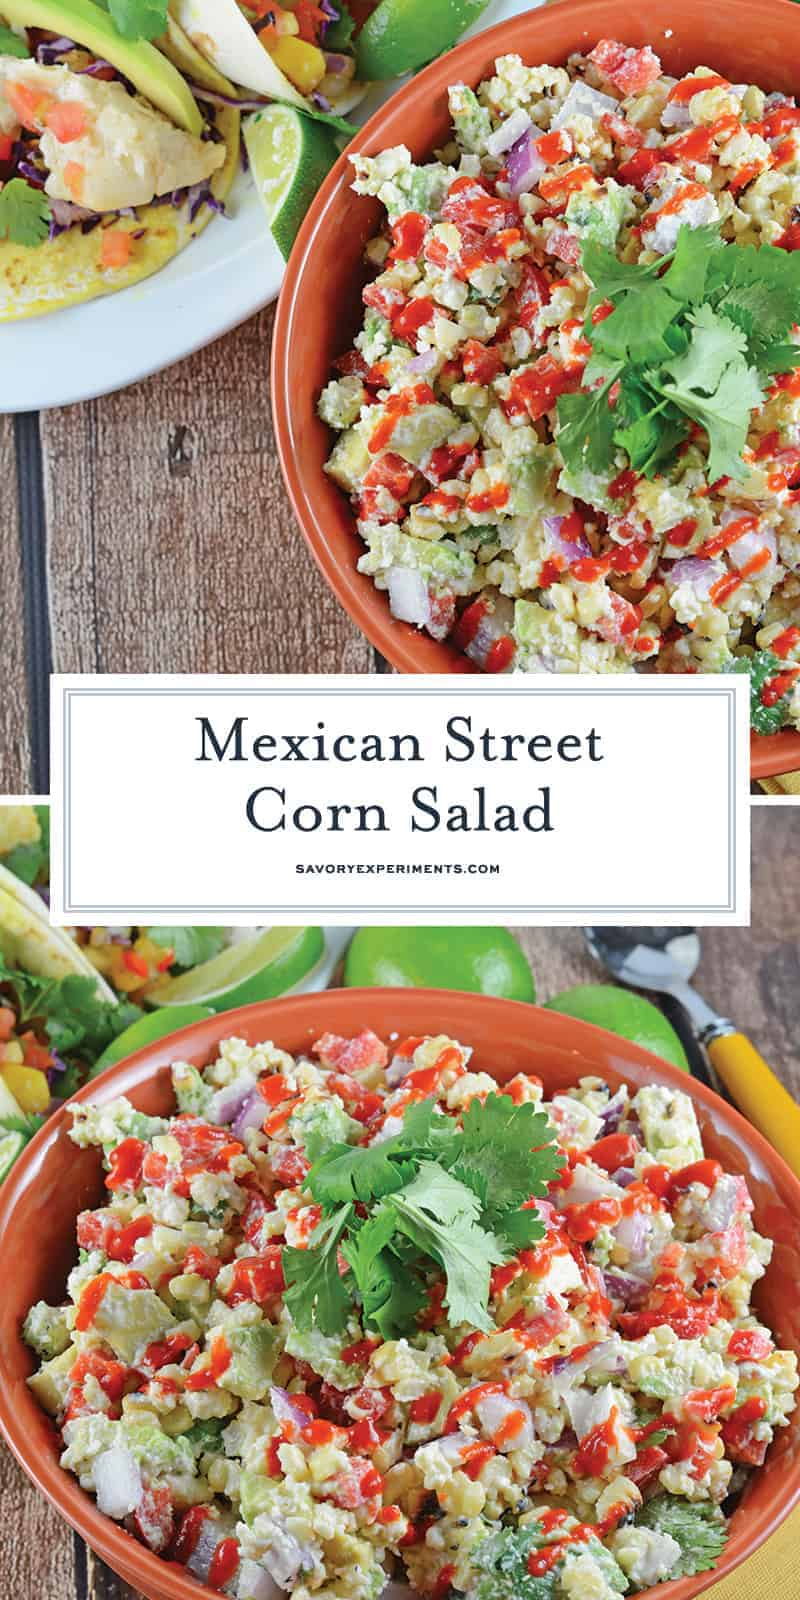 Traditional Mexican street corn is turned into the best Mexican Street Corn Salad ever! Lime, Mexican cheese with avocado, red onions and crema mexicana. #mexicanstreetcornsalad #cornsalad www.savoryexperiments.com